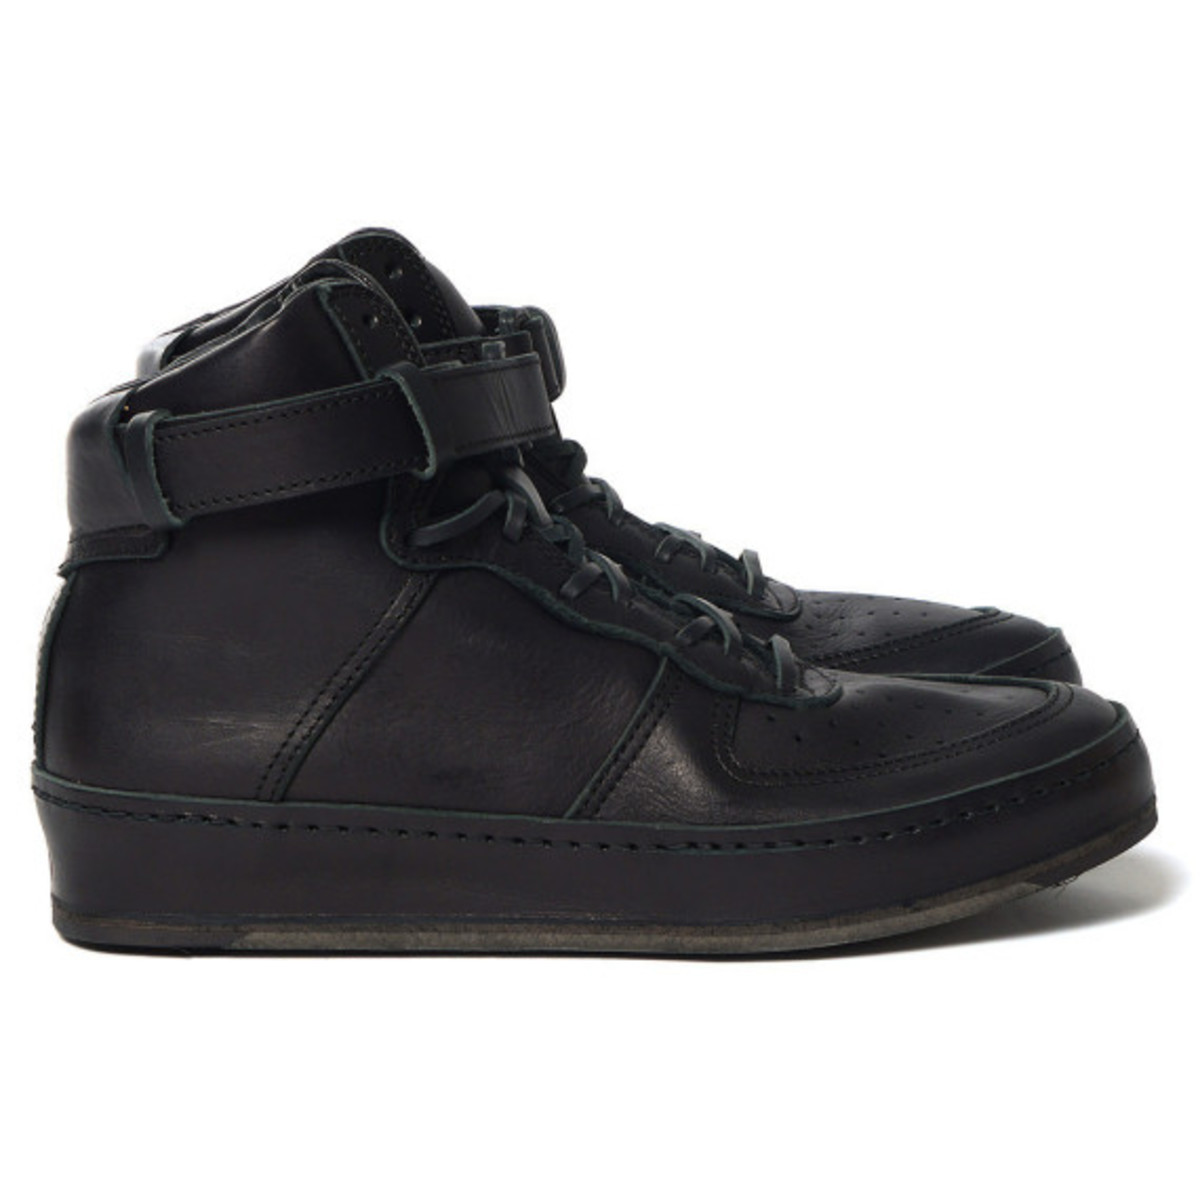 Hender Scheme - Manual Industrial Products 01 Black: Inspired by Nike Air Force 1 High - 6